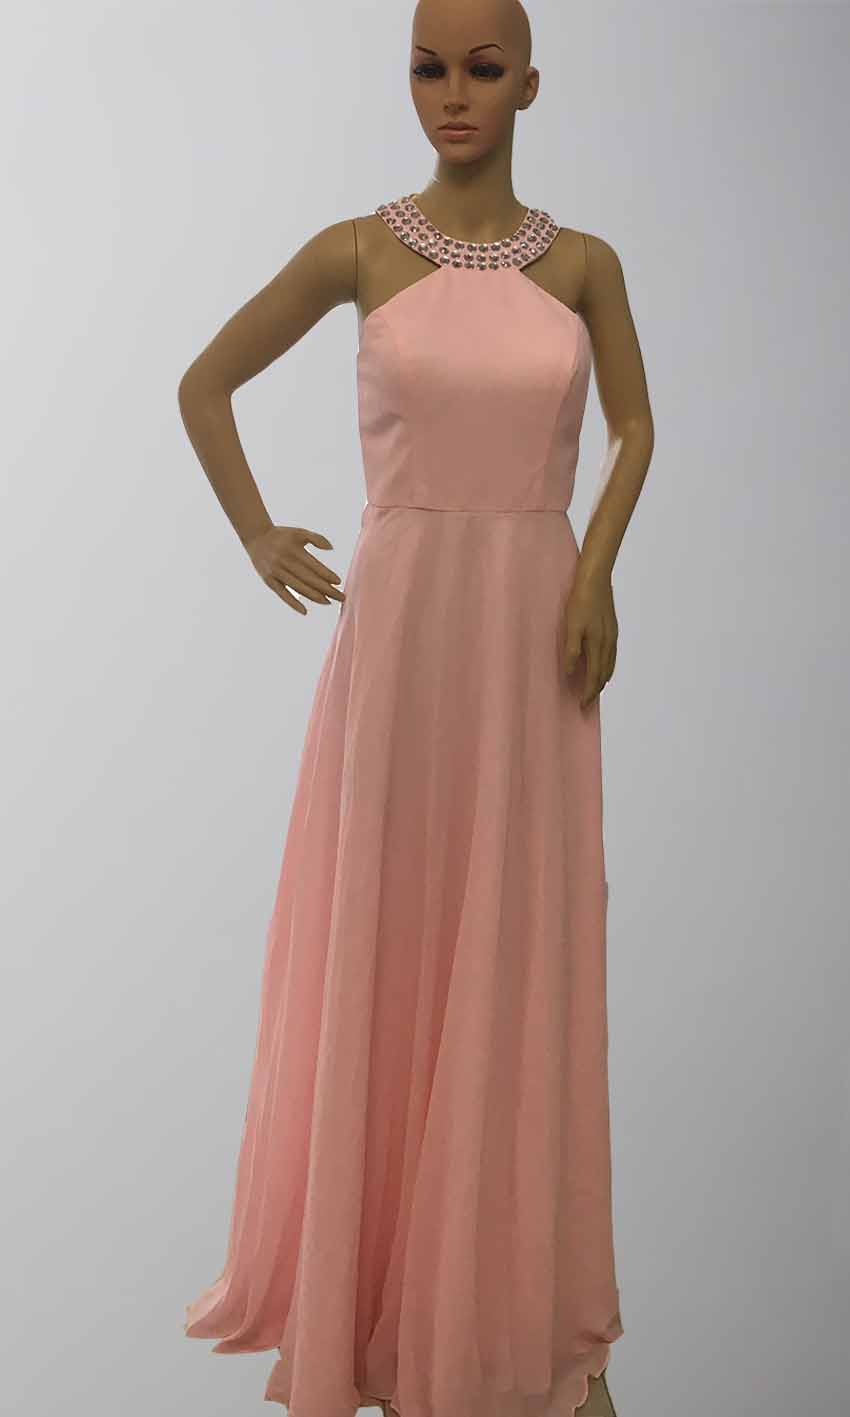 Long pink prom dresses with crystal halter ksp437 ksp437 long pink prom dresses with crystal halter ksp437 ksp437 9100 cheap prom dress uk wedding bridesmaid dresses prom 2016 dresses kissprom ombrellifo Gallery